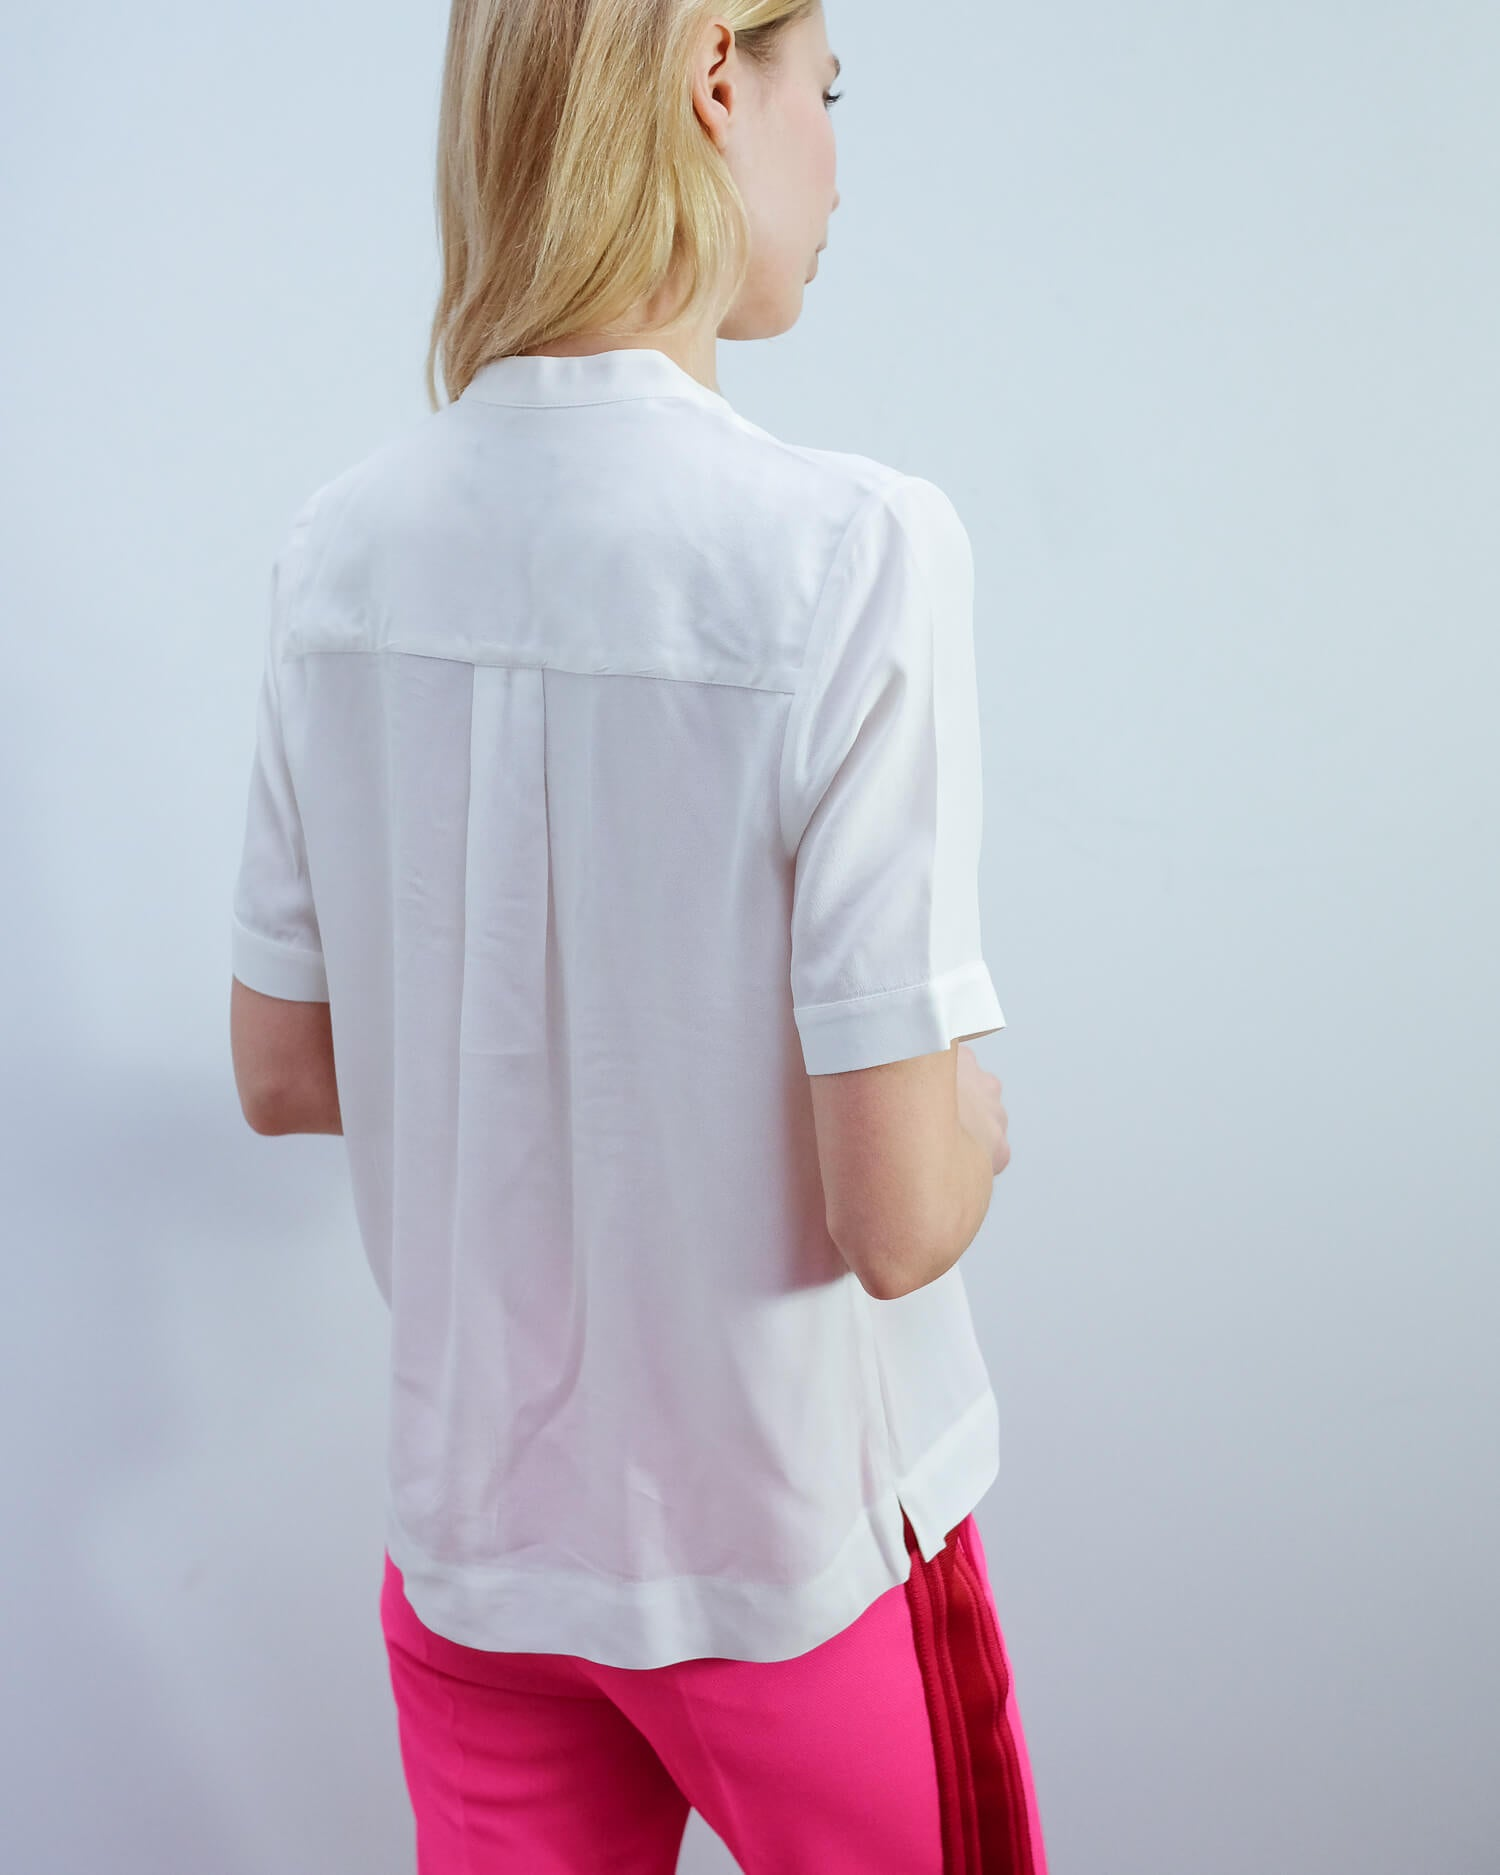 SLF Ella top in white